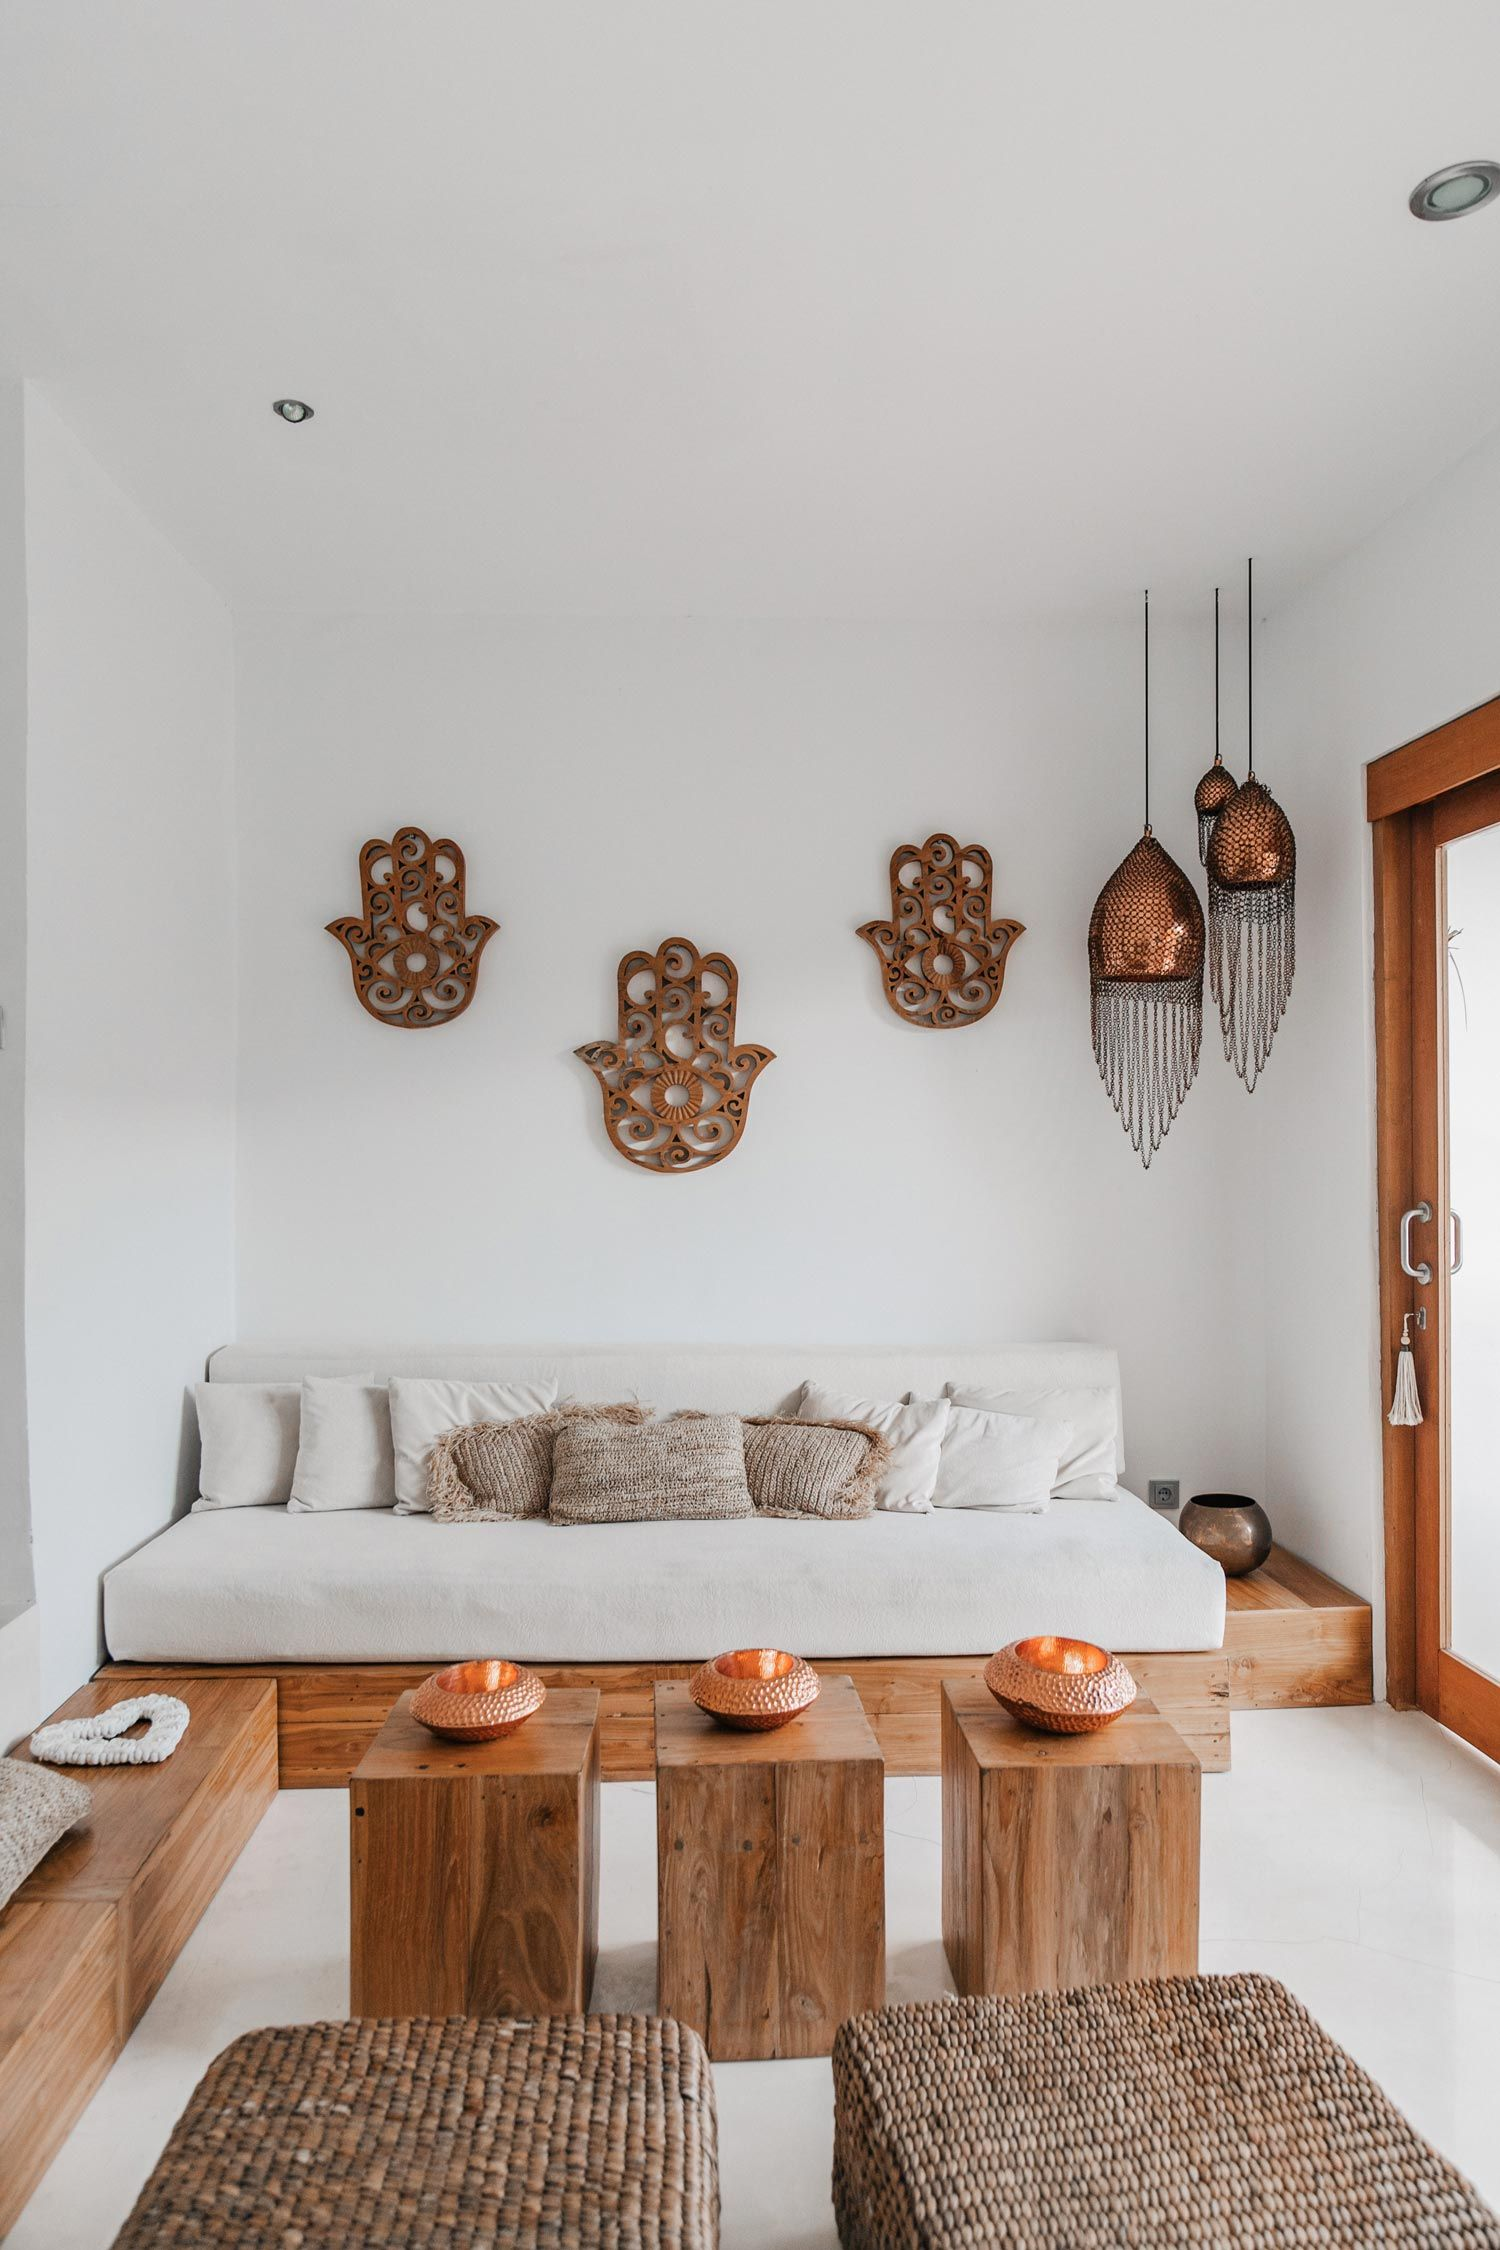 Bali Indonesia Trip Travel Photography Wanderlust Interior Design Home Decor Rose Gold Interior Design Living Room Gold Living Room Balinese Interior